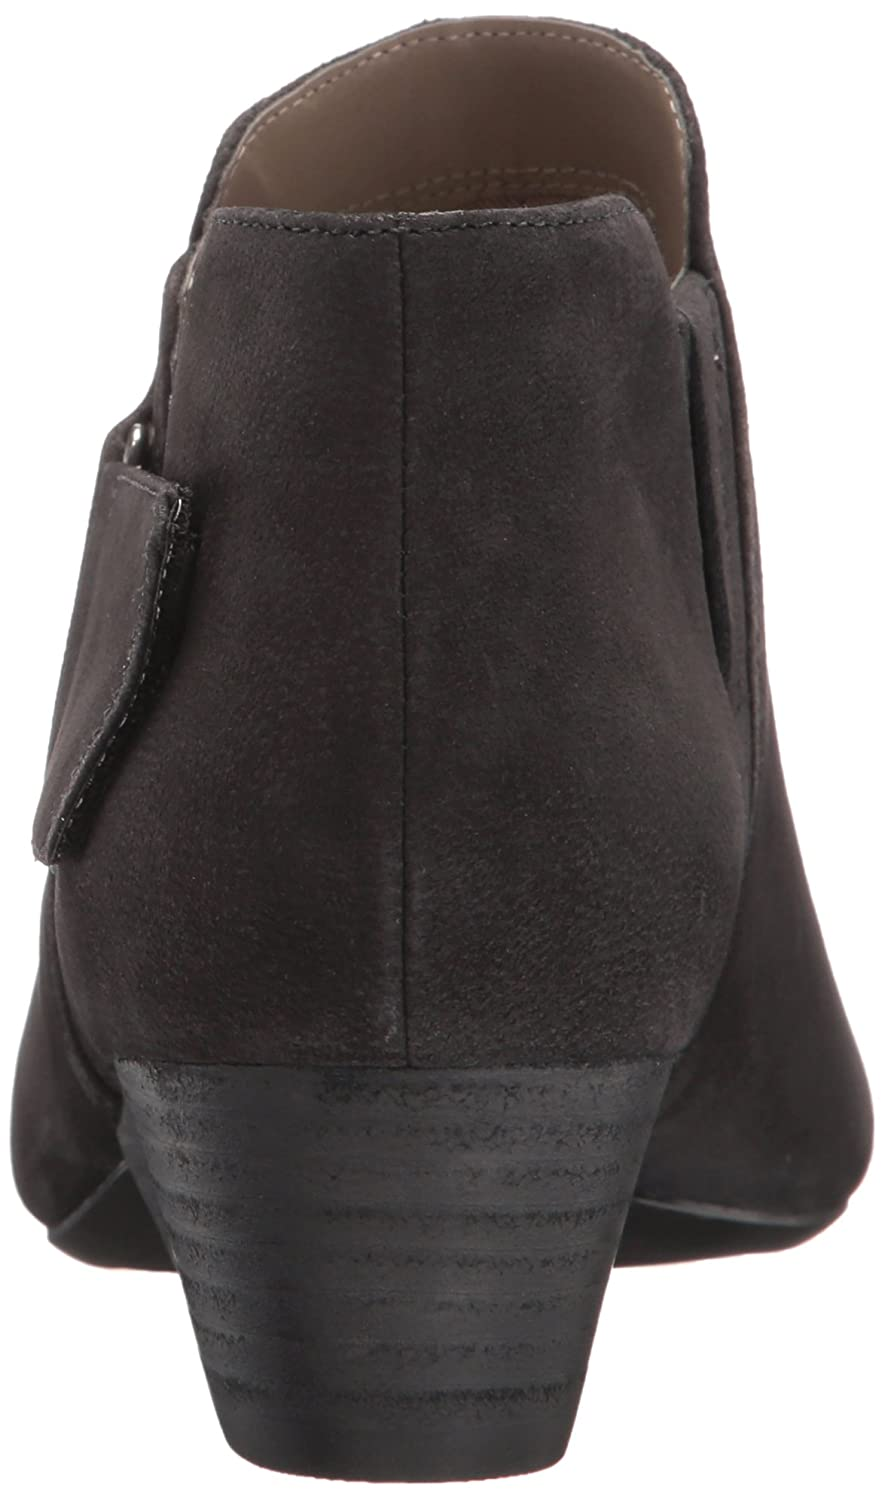 Naturalizer Women's Gemi Ankle Bootie B01I2L4NI8 10.5 B(M) US|Black